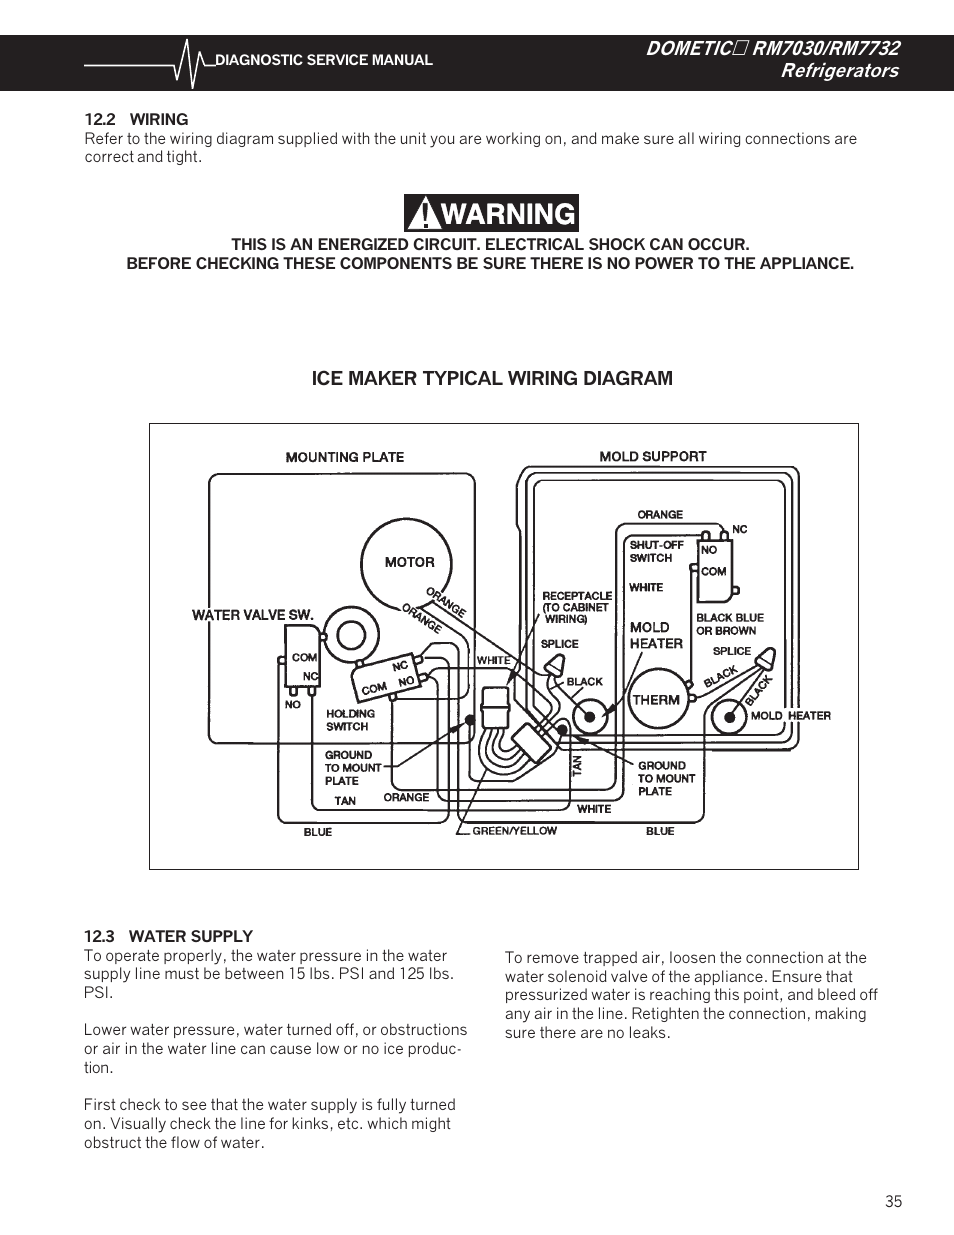 Uline Ice Maker Wiring Diagram : Wiring water supply dometic rm user manual